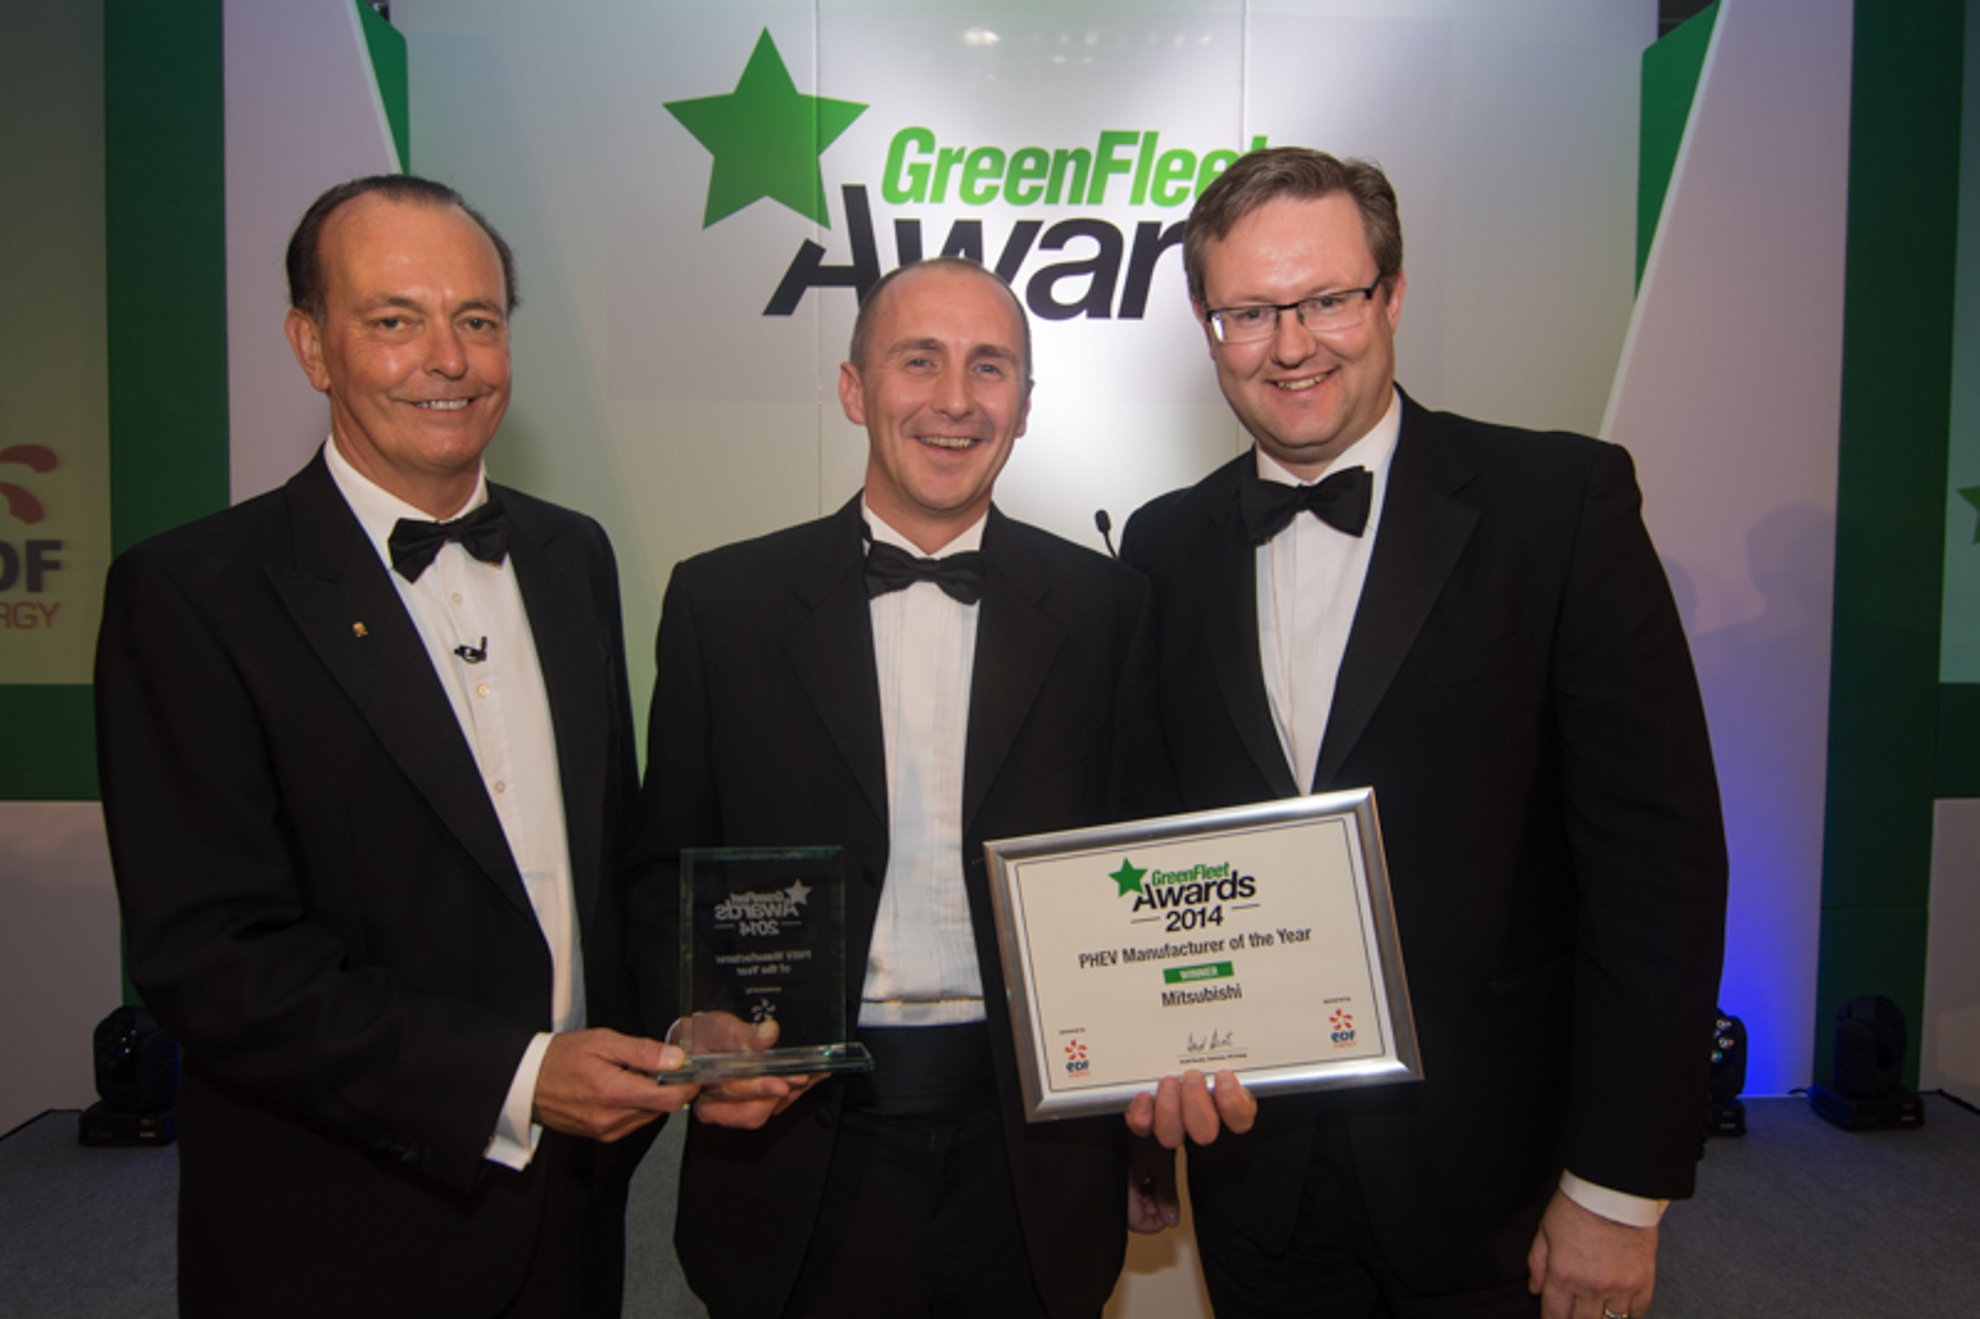 Green-Fleet-Awards